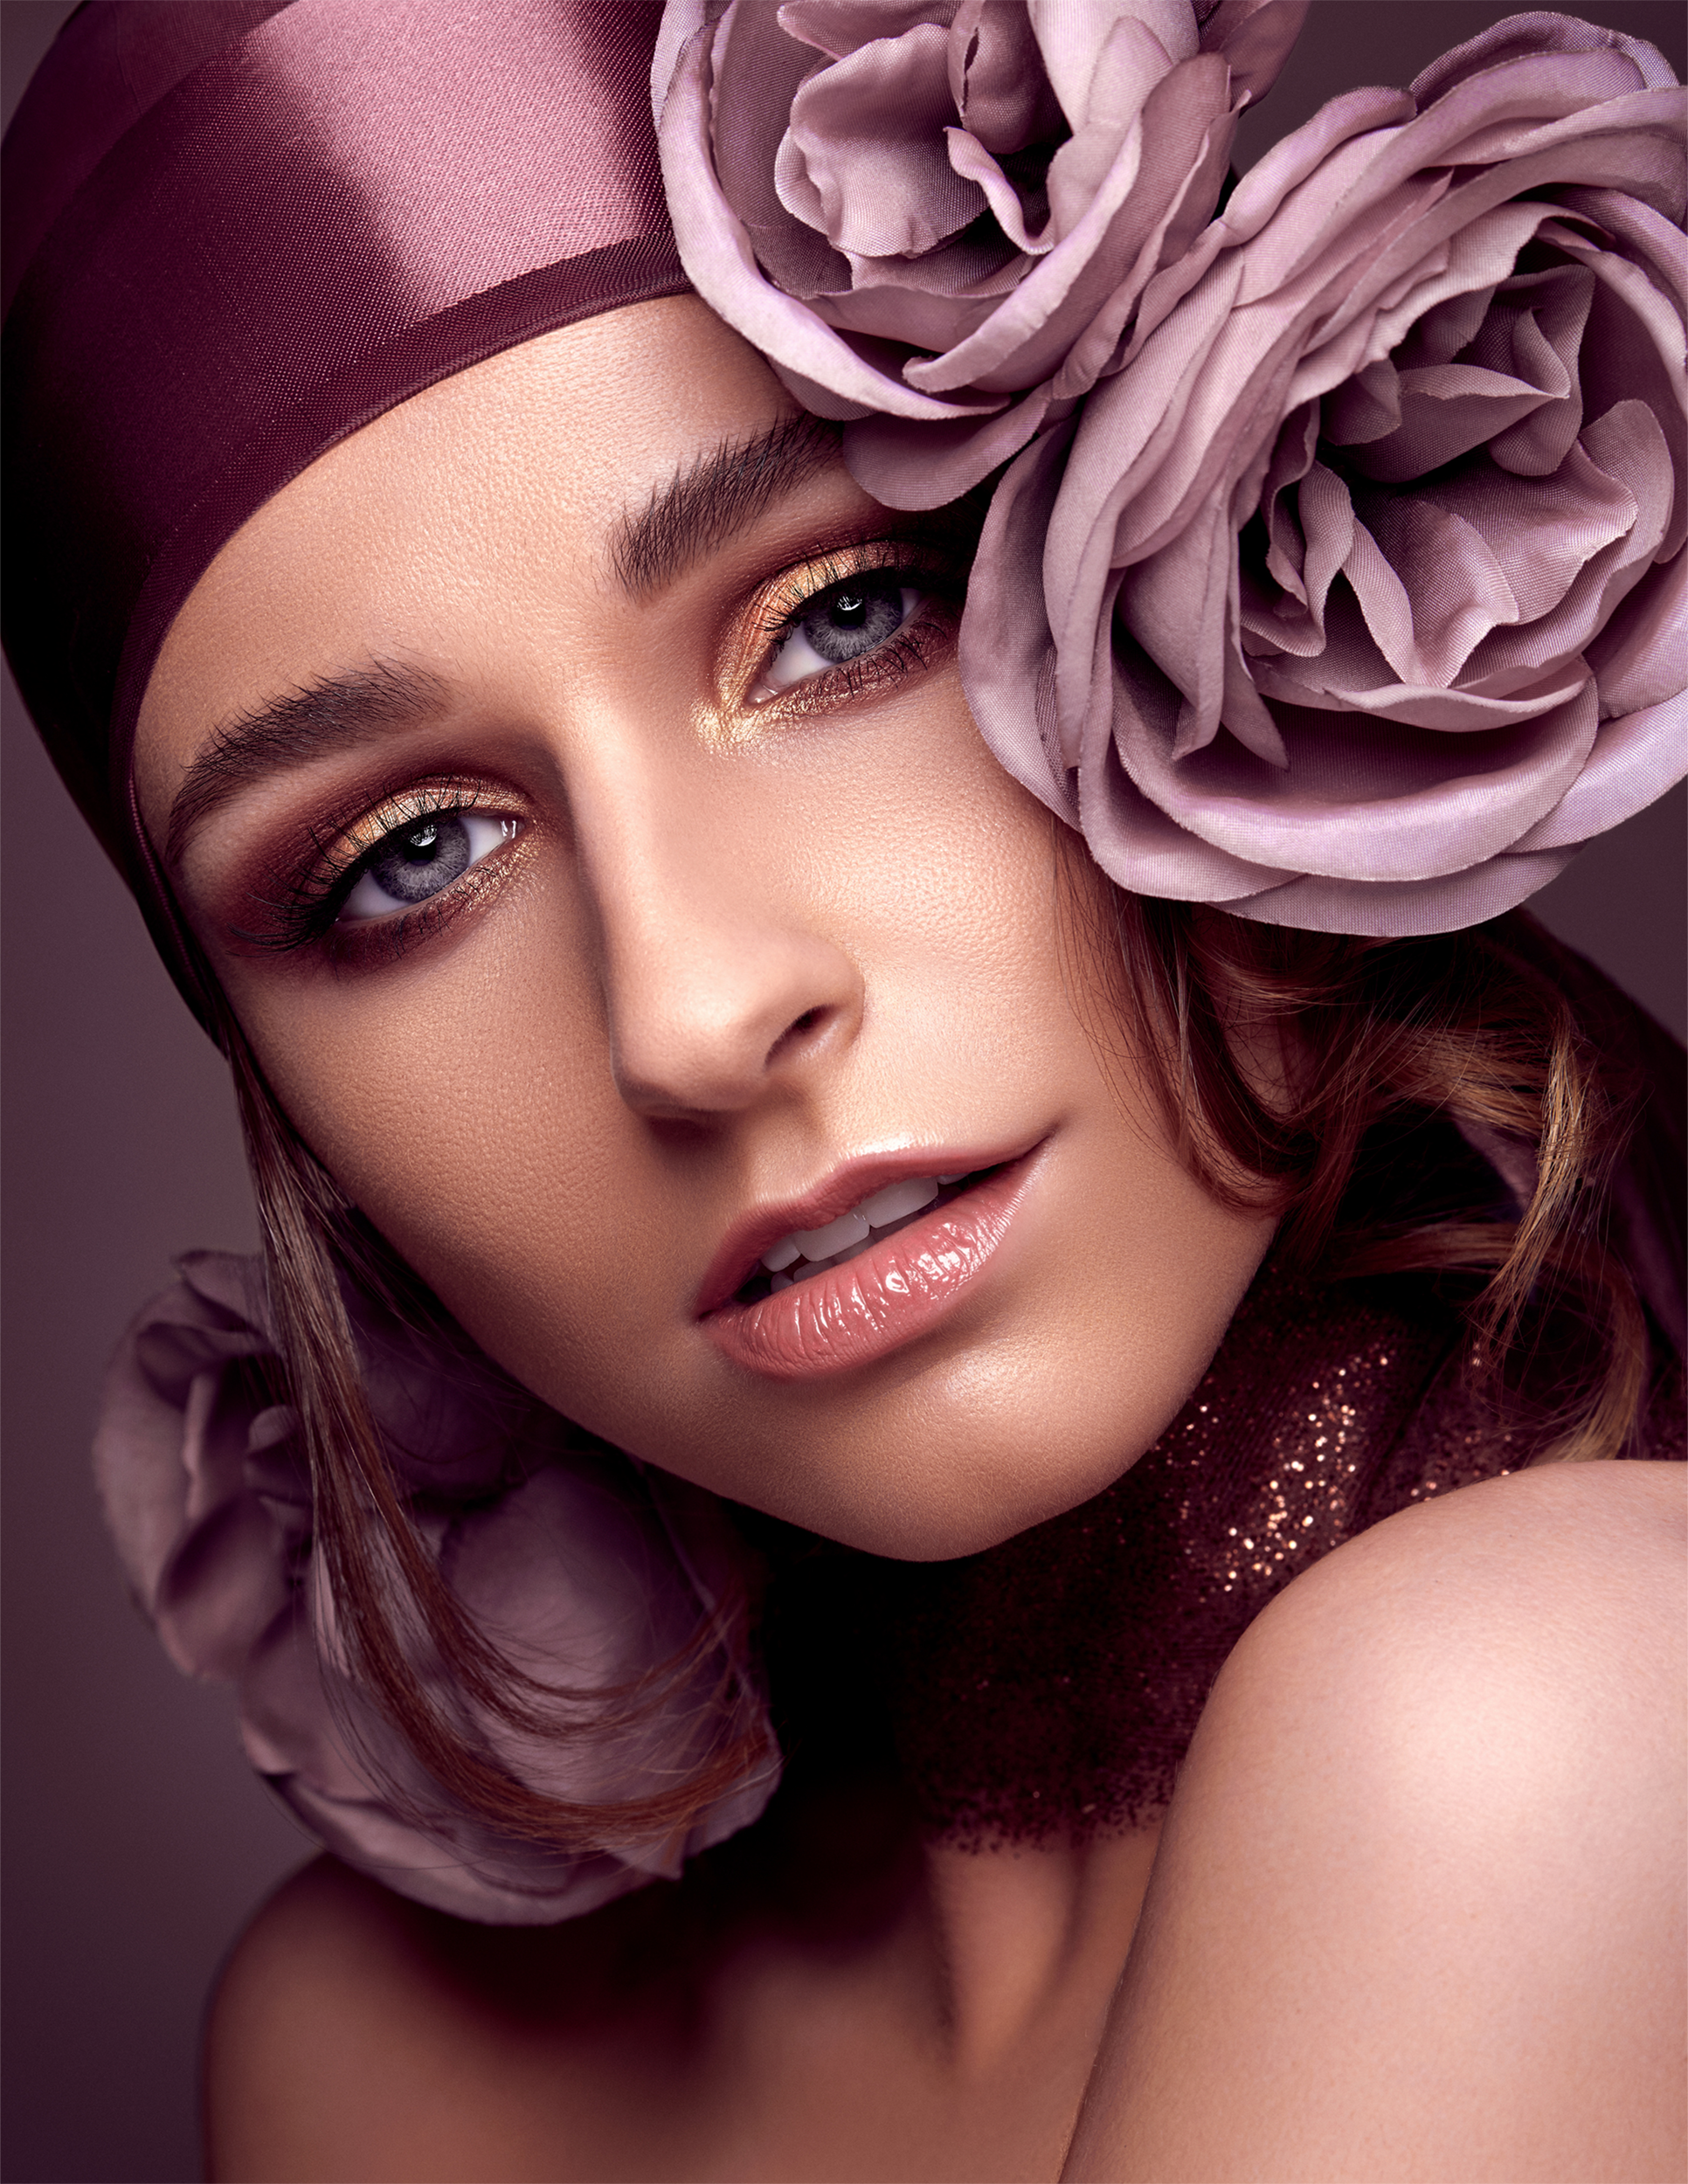 IMIRAGE MAGAZINE - SEPTEMBER 2018   Madame Periwinkle beauty editorial by Antonio Martez, New York Fashion and Beauty Photographer, was featured in the September 2018 edition of Imirage Magazine. The editorial was a Cover & Feature Spread for that edition.  .